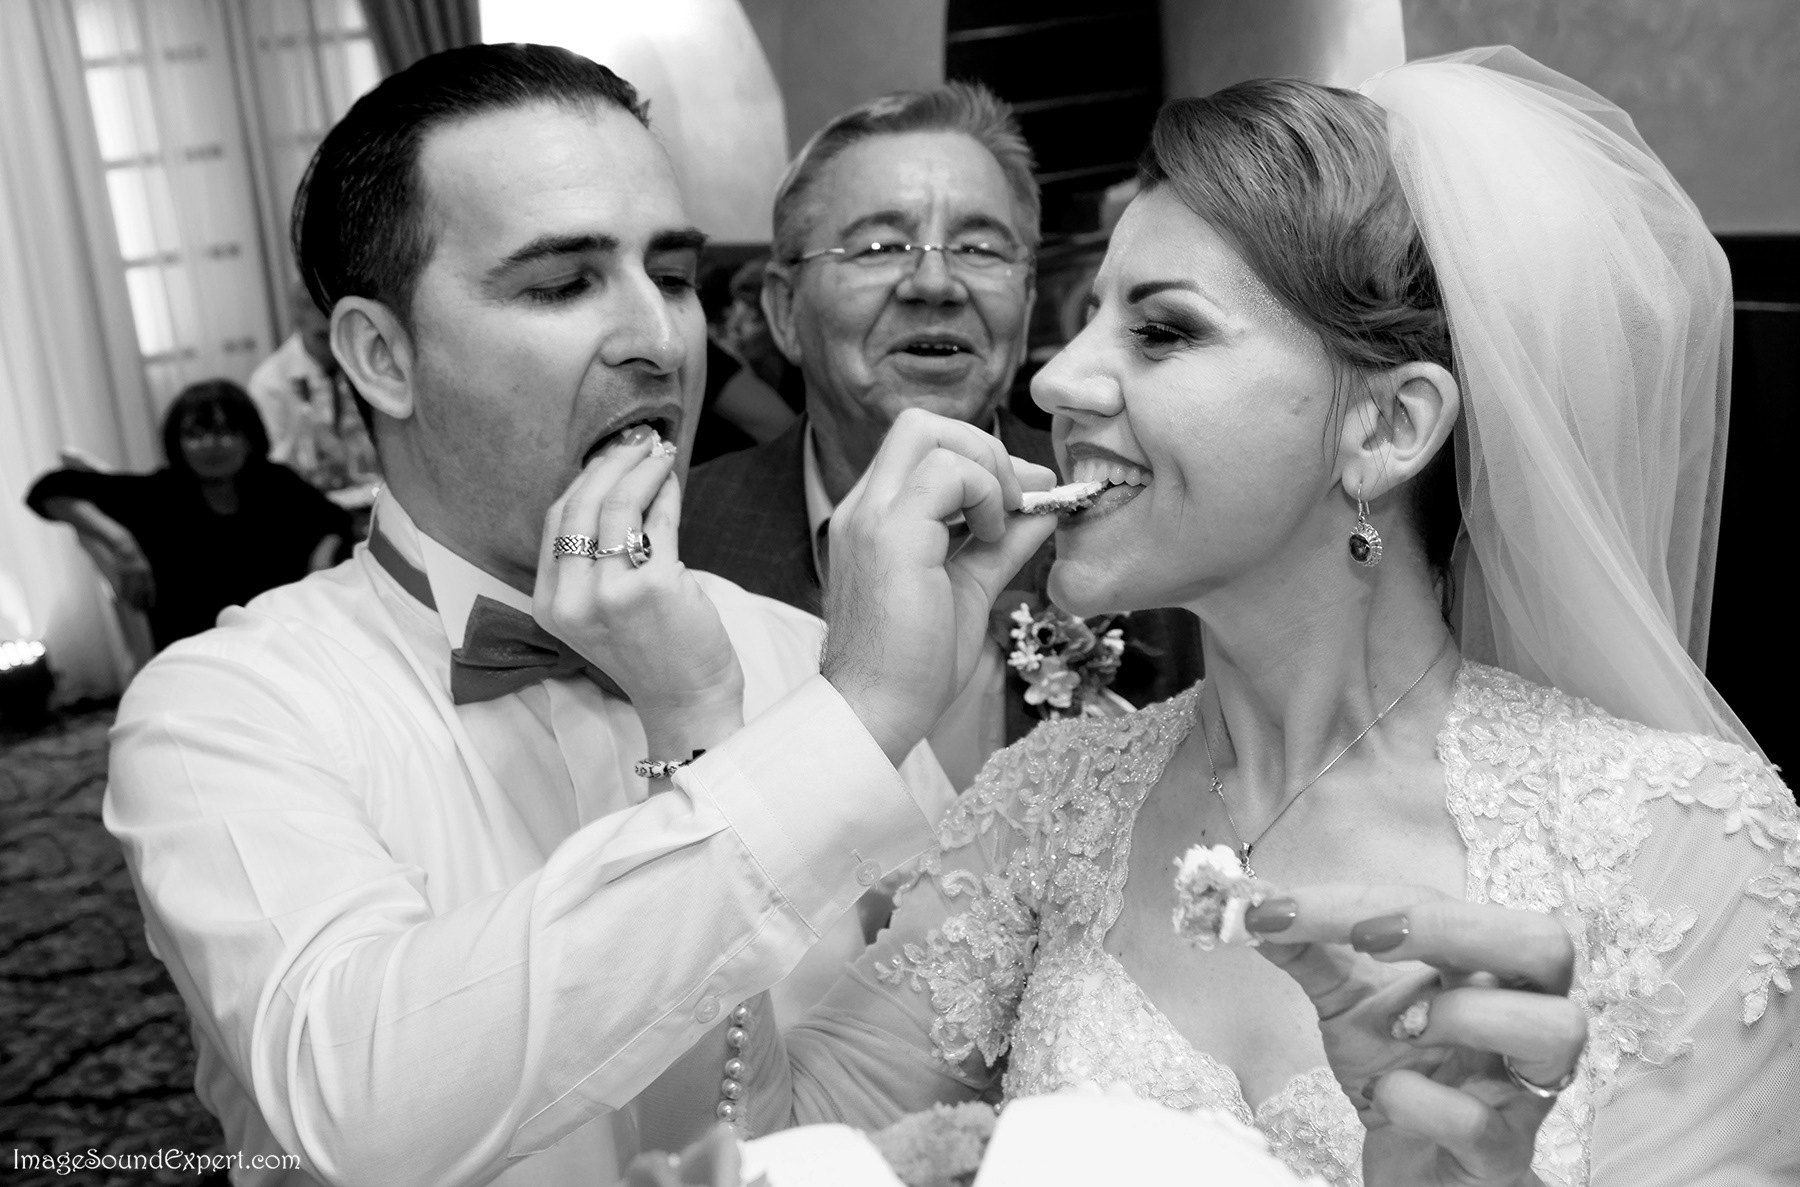 fun wedding - give me a cake by Angelica Vaihel